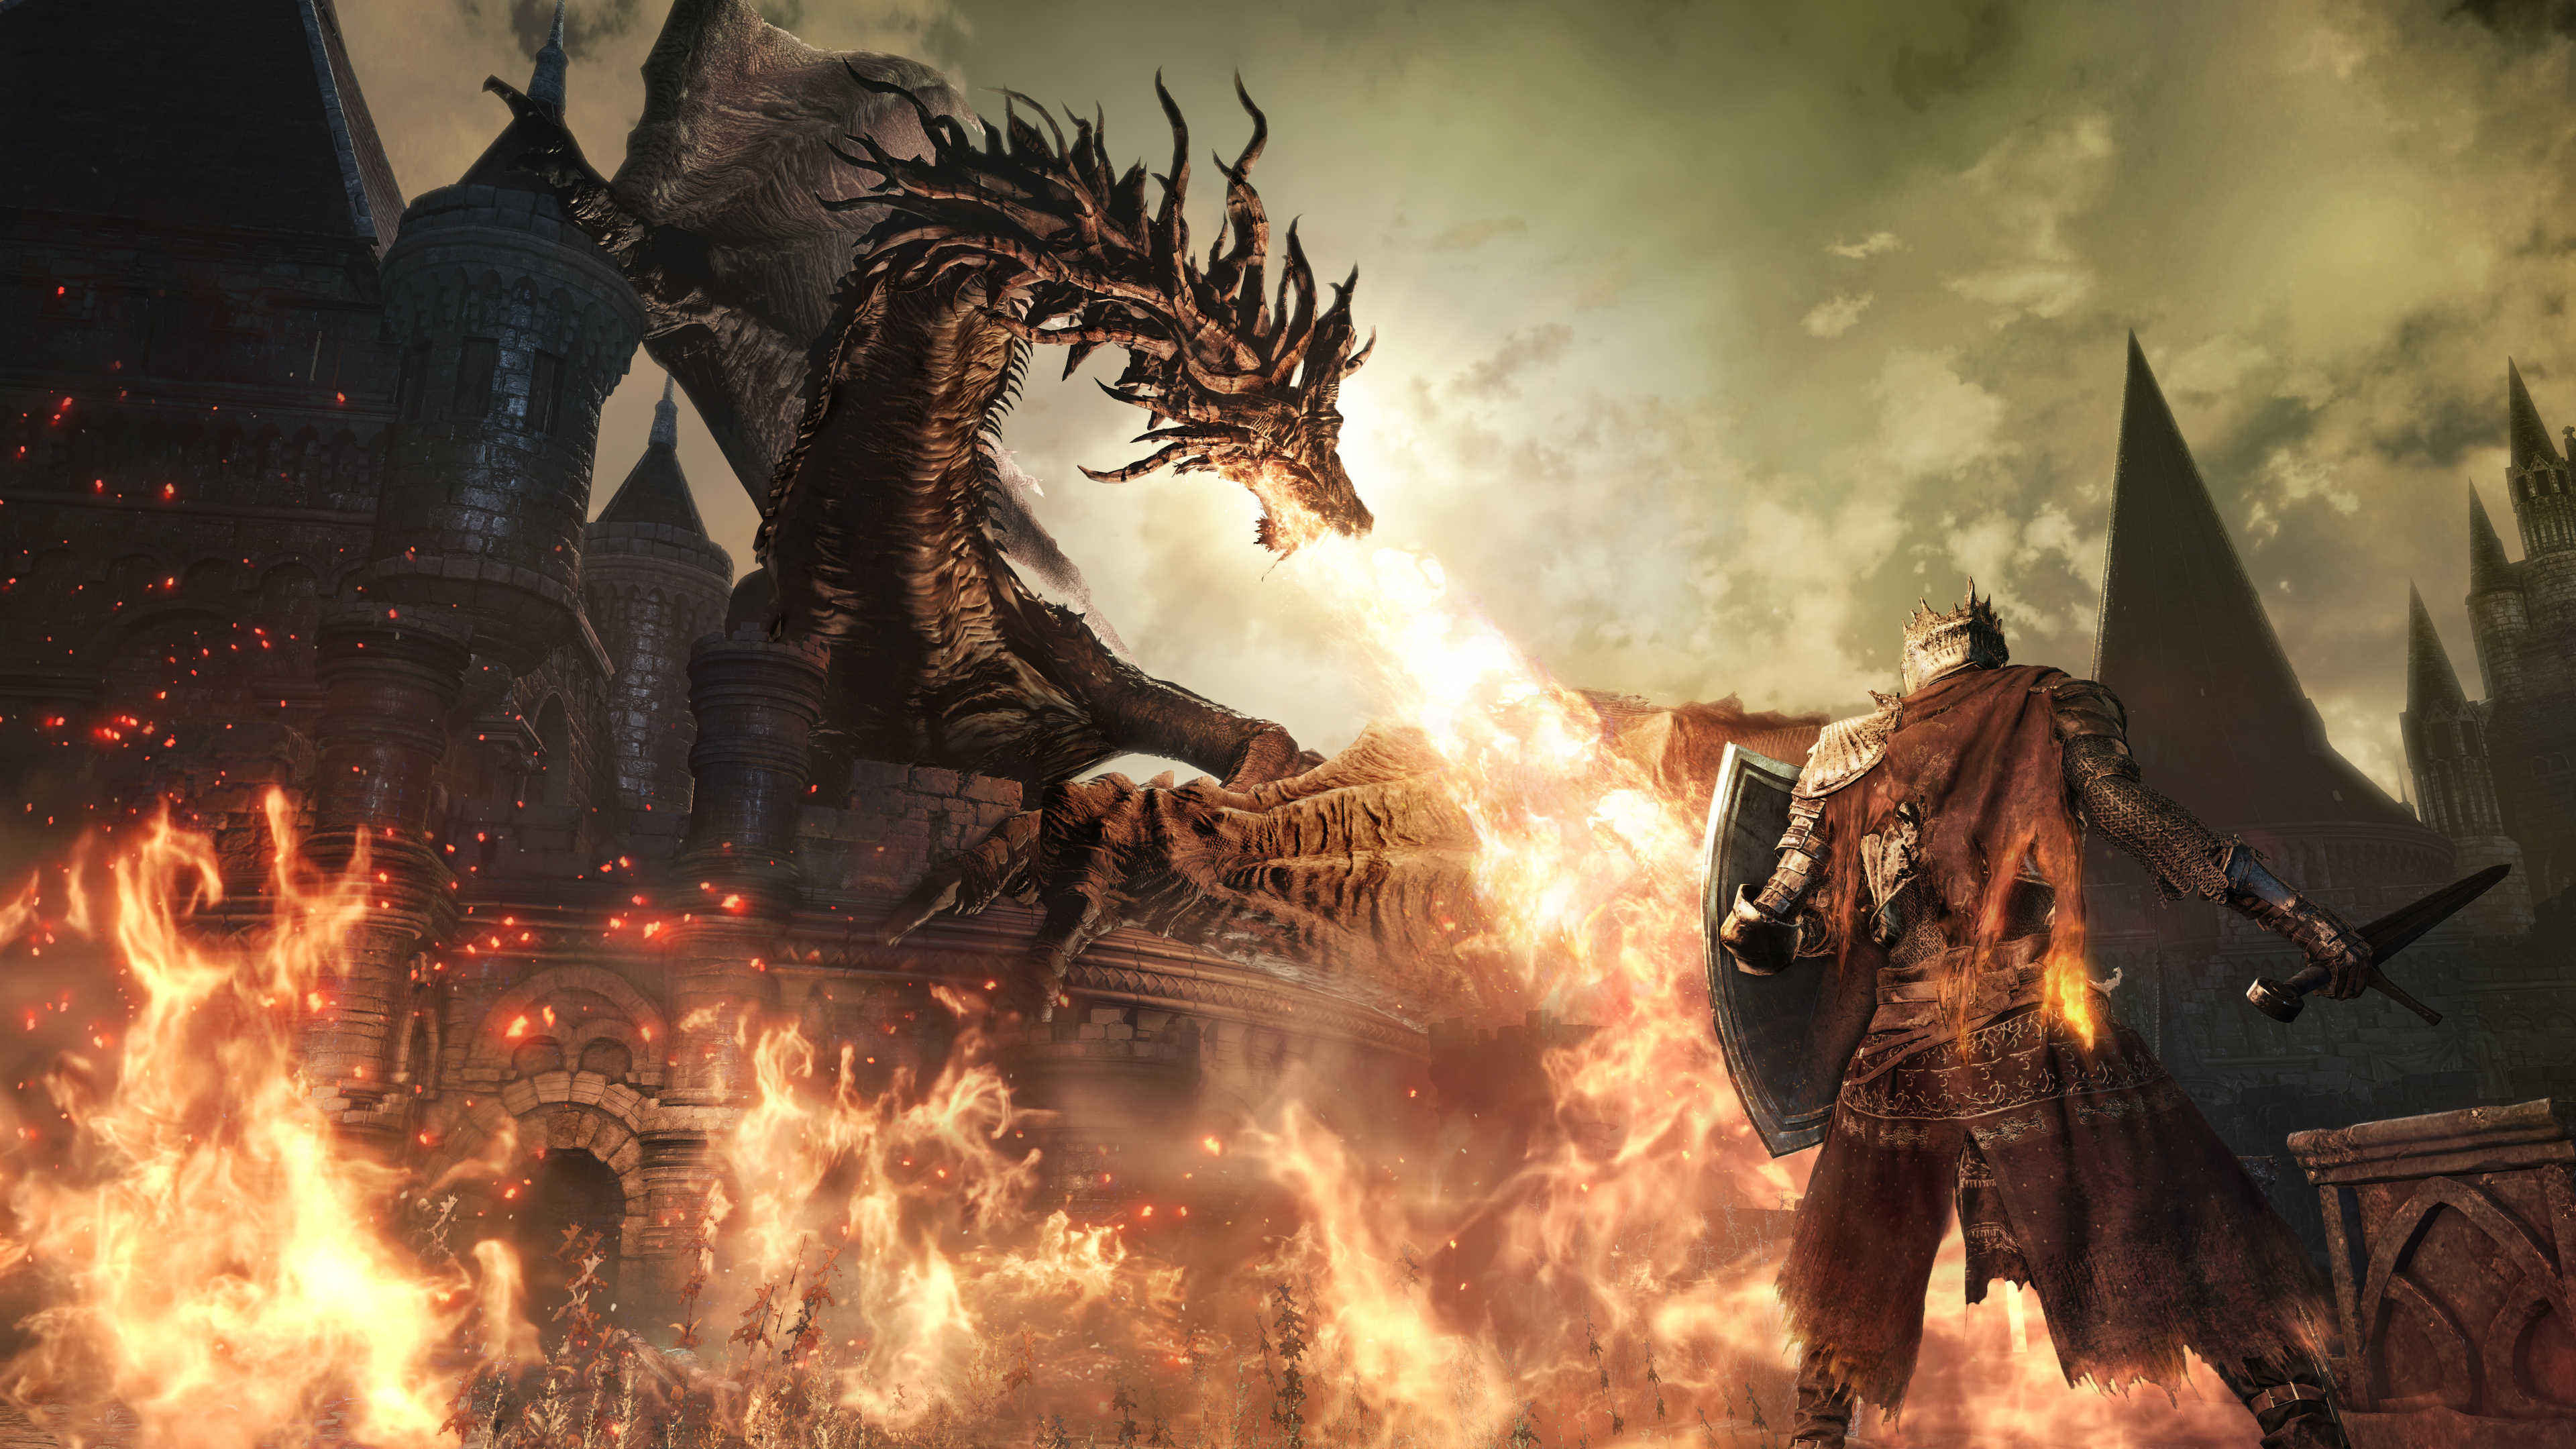 Dark-Souls-3-wallpaper-010.jpg